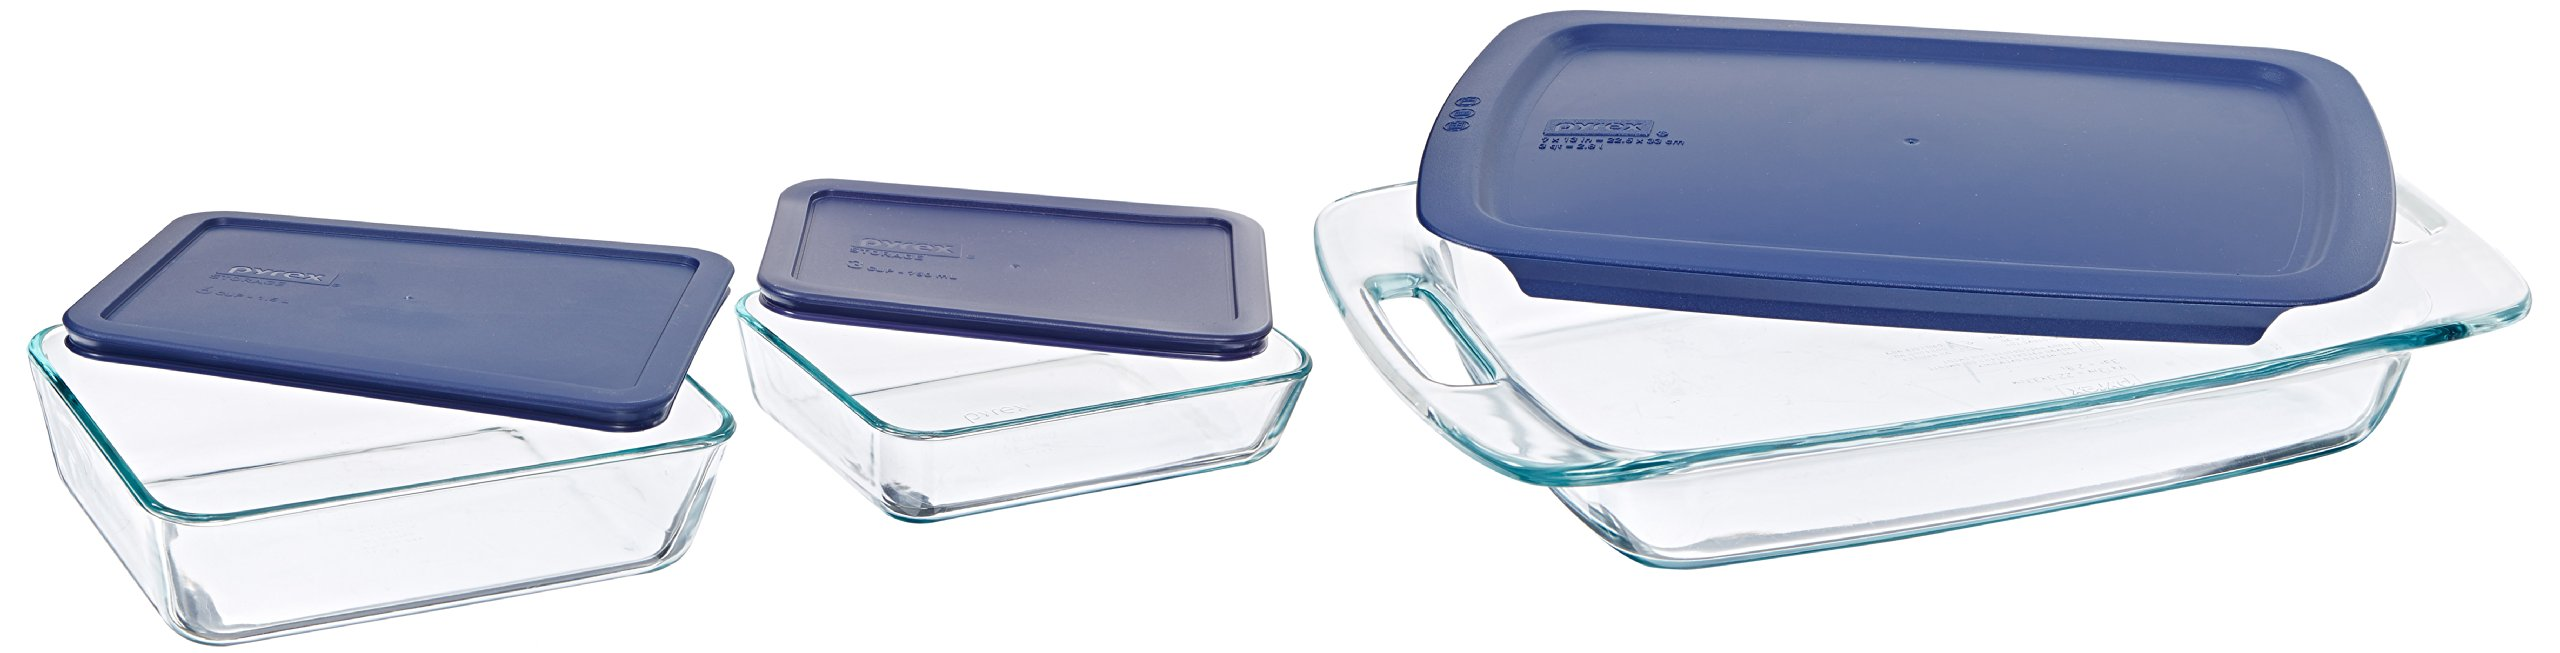 Pyrex Easy Grab 6-Piece Glass Bakeware and Food Storage Set by Pyrex